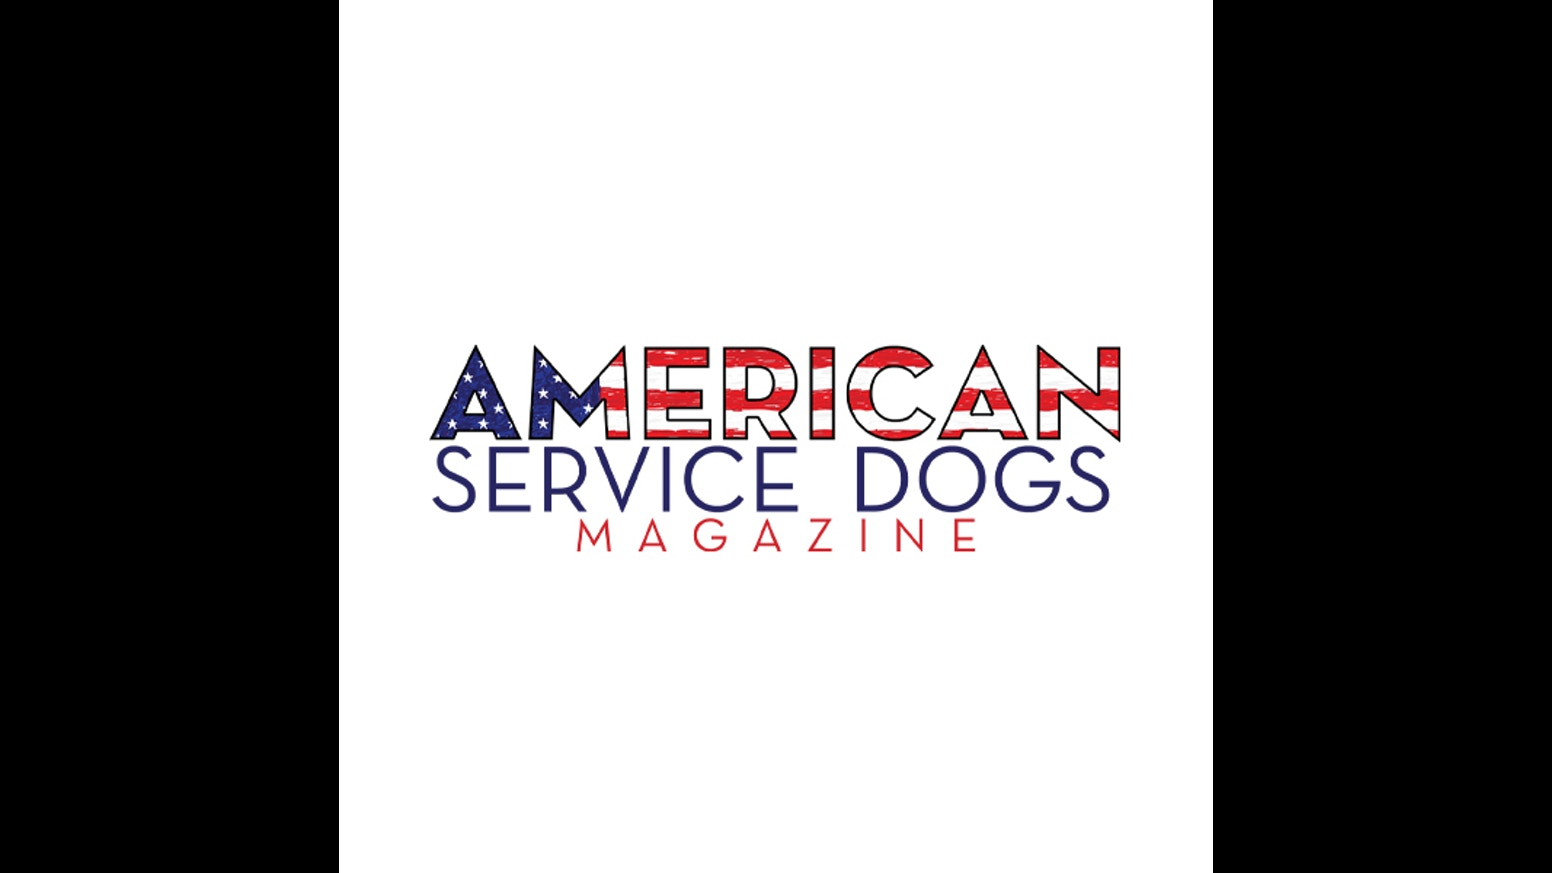 american service dogs magazine by amanda baity kickstarter. Black Bedroom Furniture Sets. Home Design Ideas